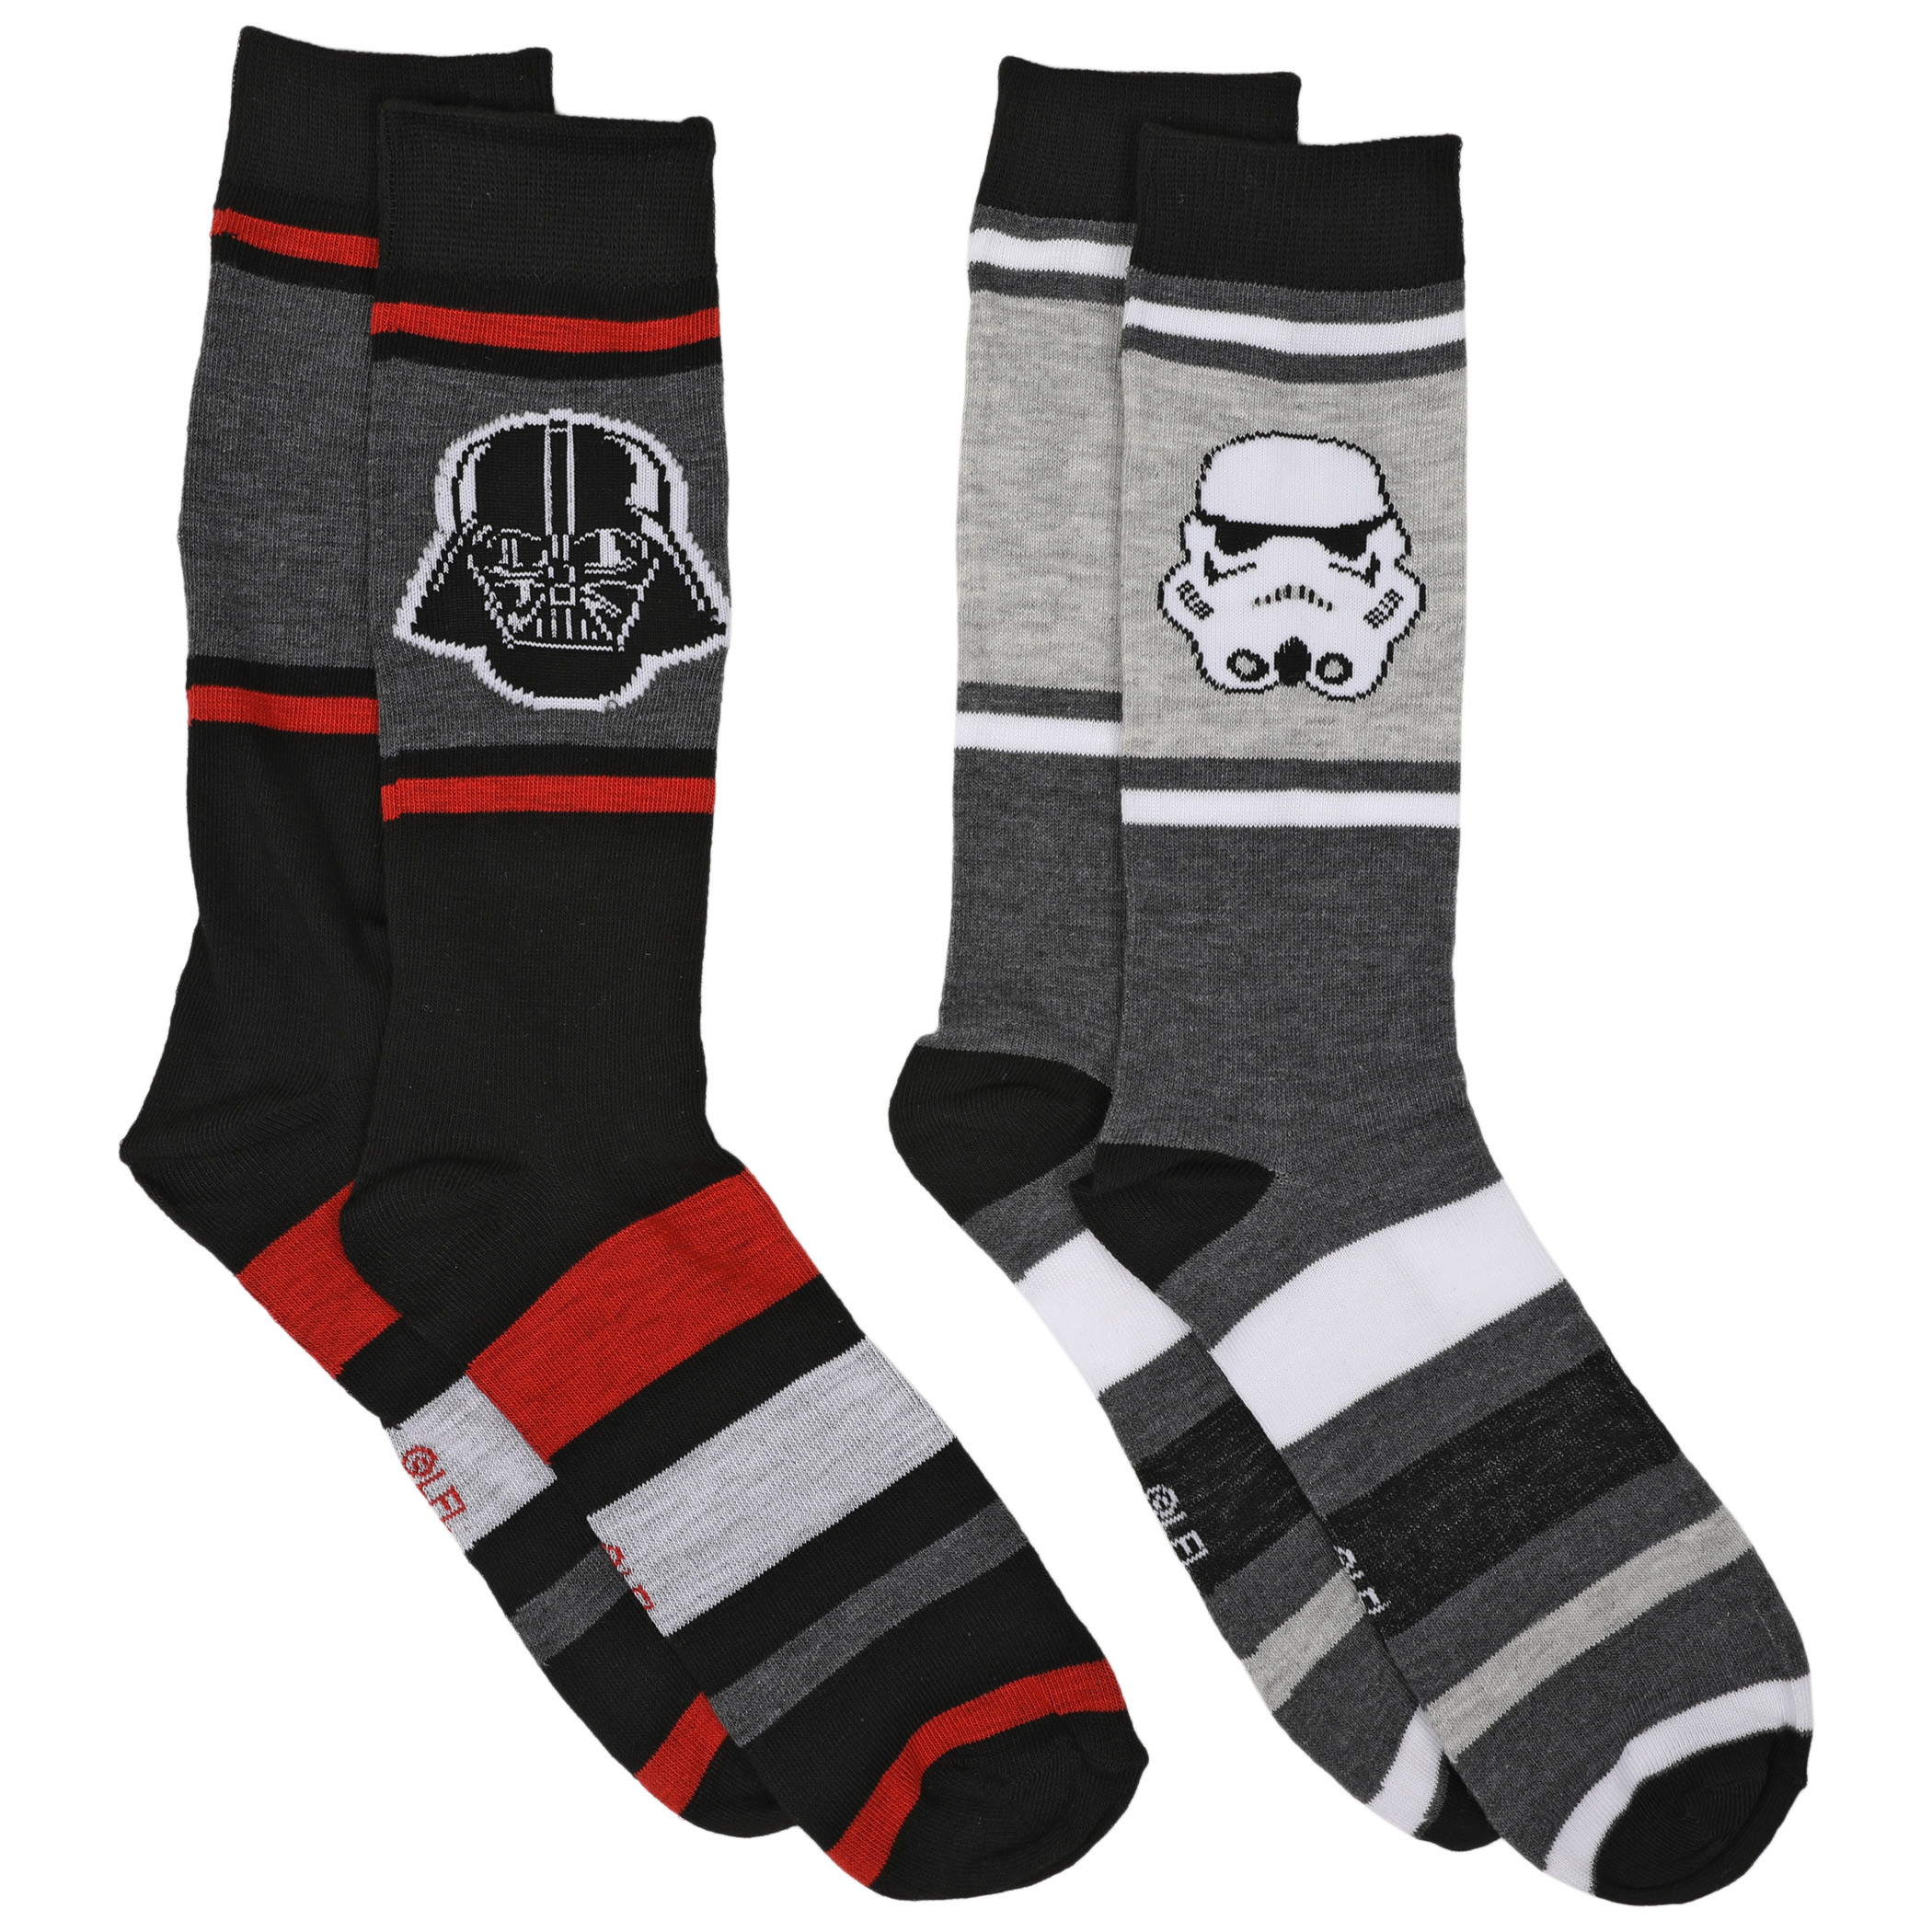 Star Wars Darth Vader and Stormtrooper 2-Pair Pack of Casual Crew Socks